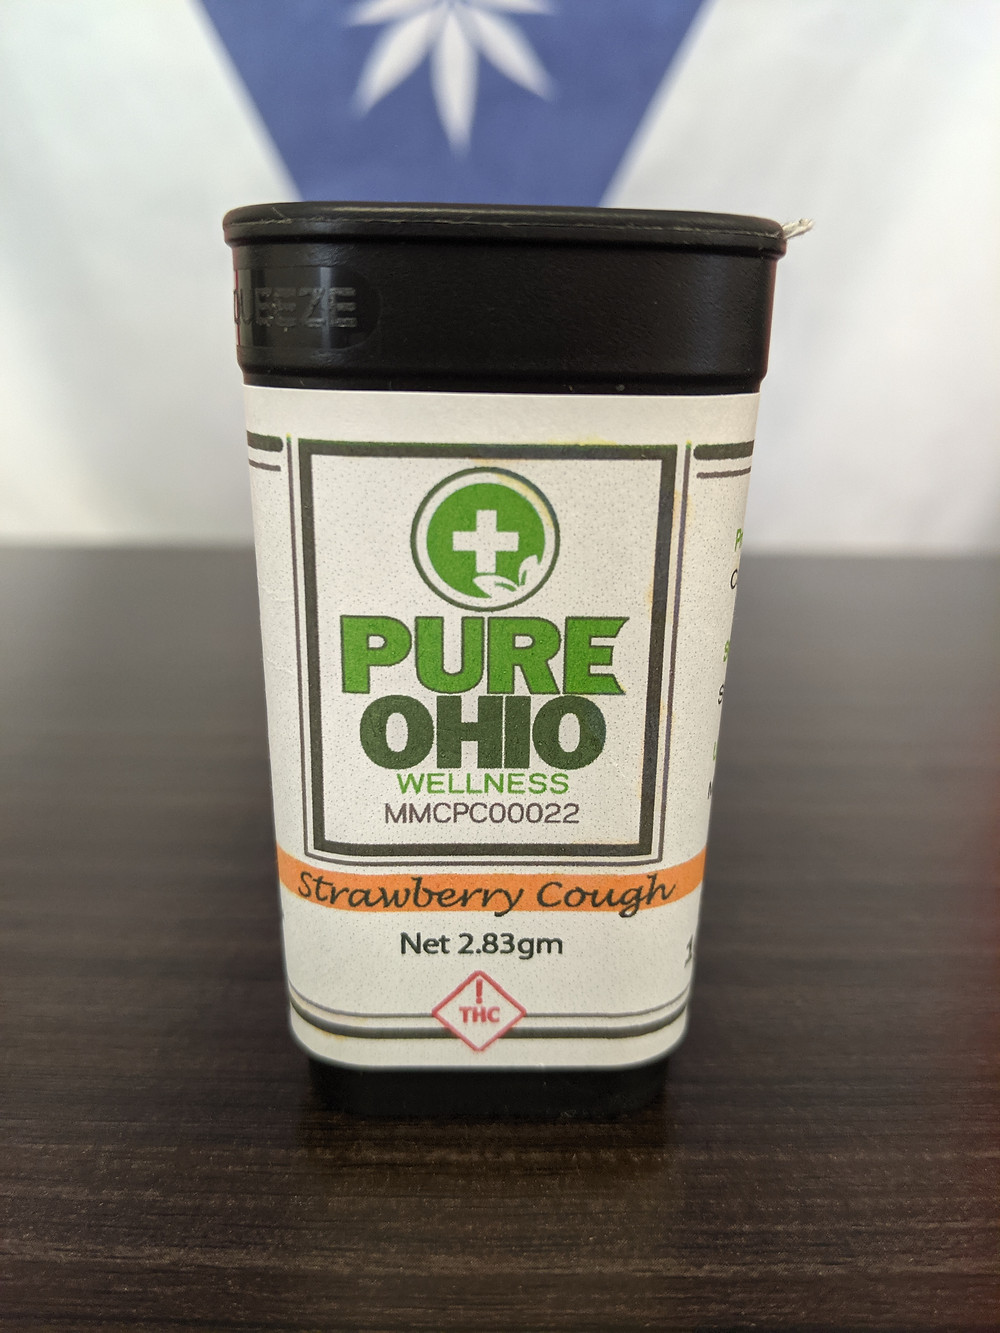 Packaging for Pure Ohio Wellness Flower